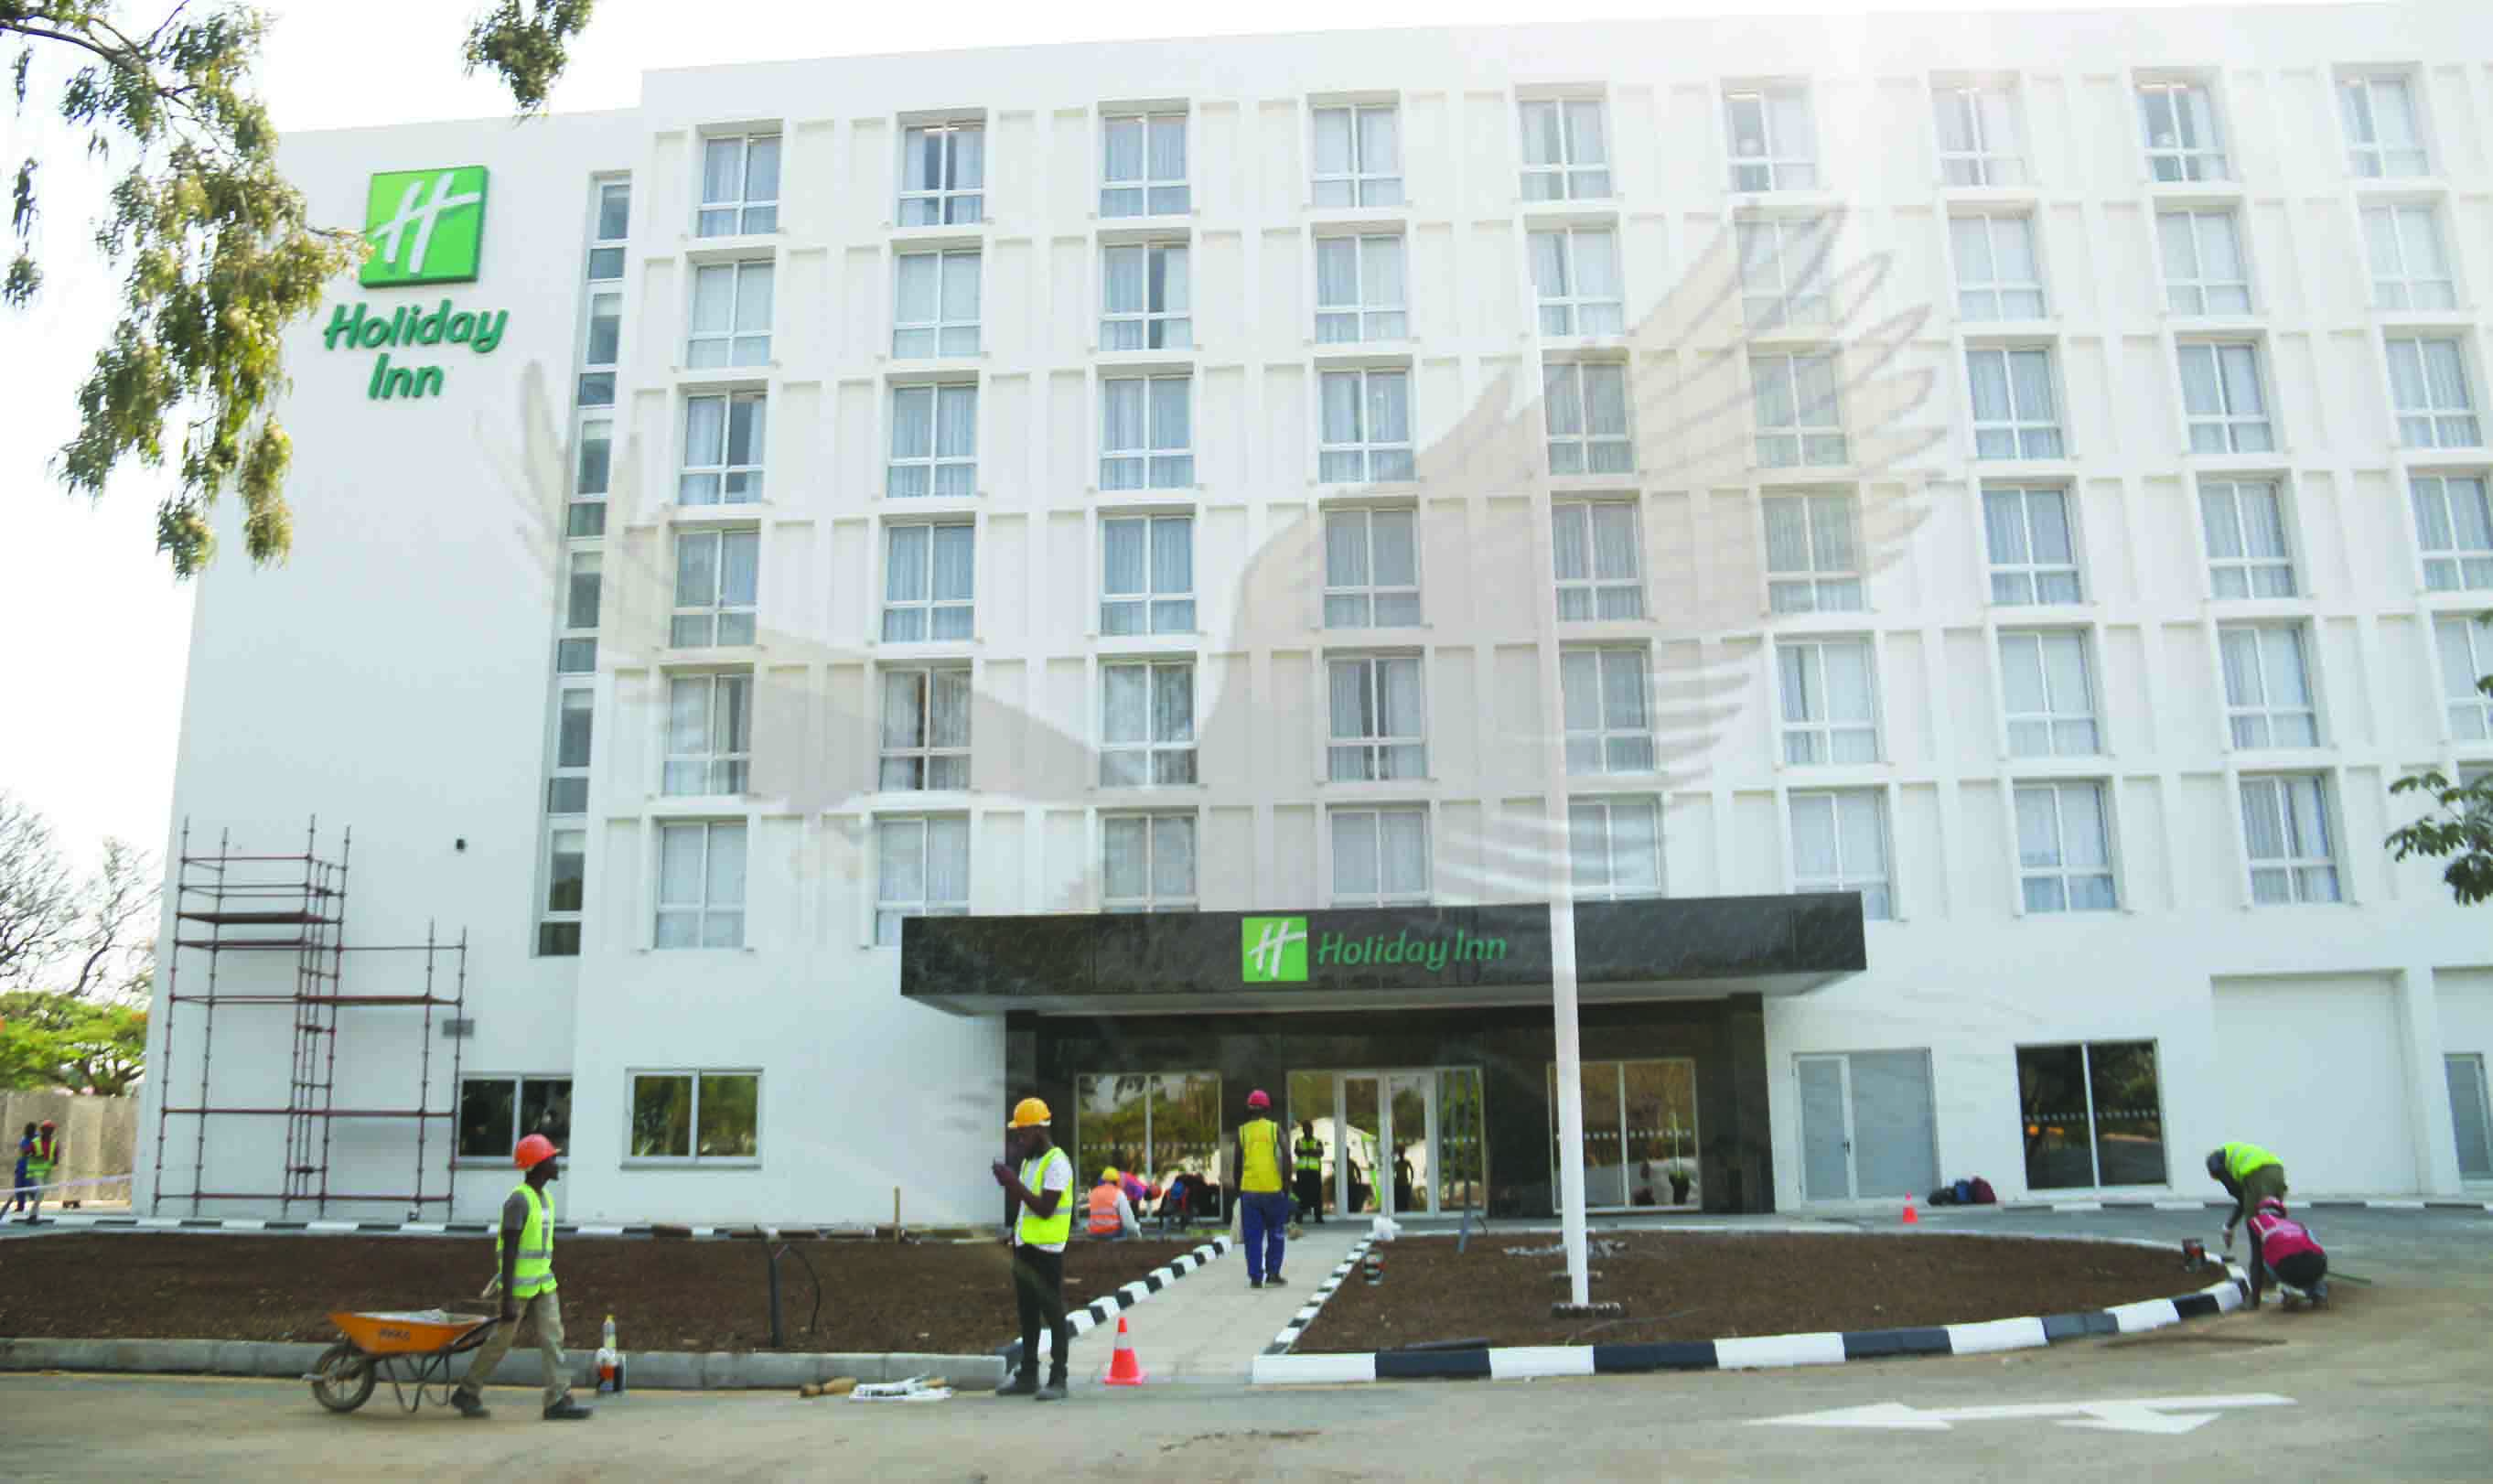 Doors open for customers at Holiday Inn